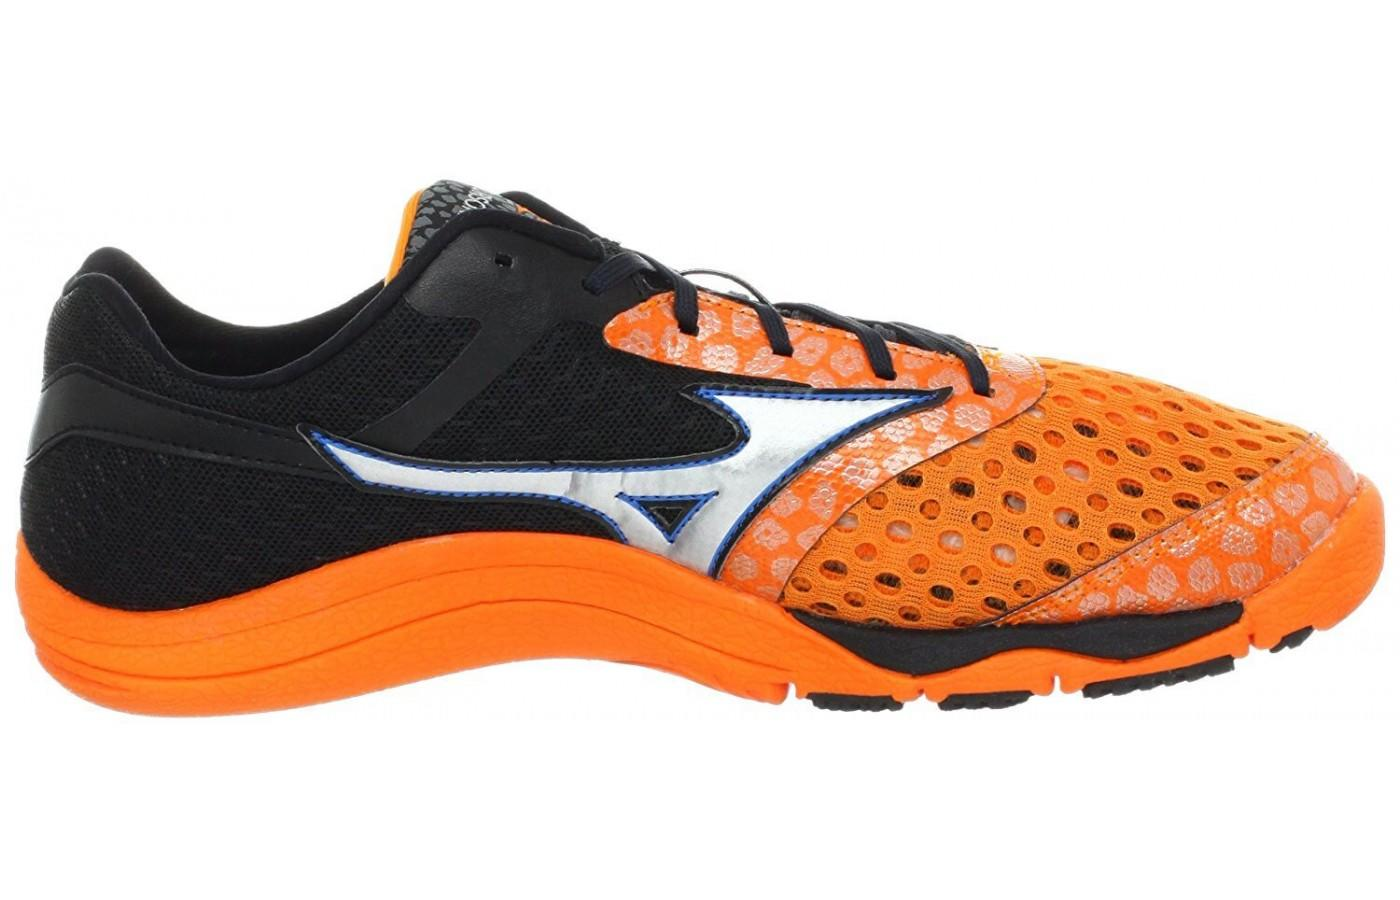 the look of the Mizuno Wave Evo Cursoris was popular with many testers